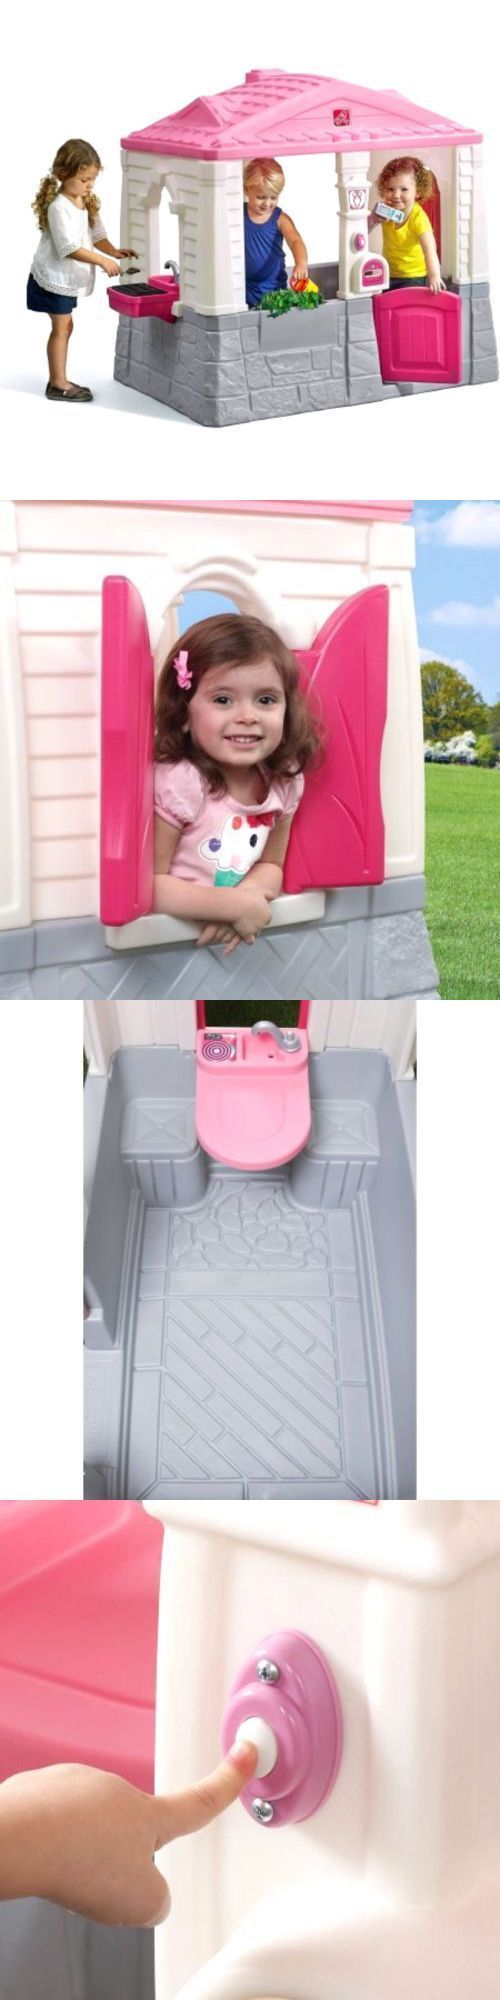 Permanent Playhouses 145995: Kids Plastic Playhouse Cottage Pink Children Indoor Outdoor Play House Girls Kit -> BUY IT NOW ONLY: $183.45 on eBay! #indoorplayhousekits